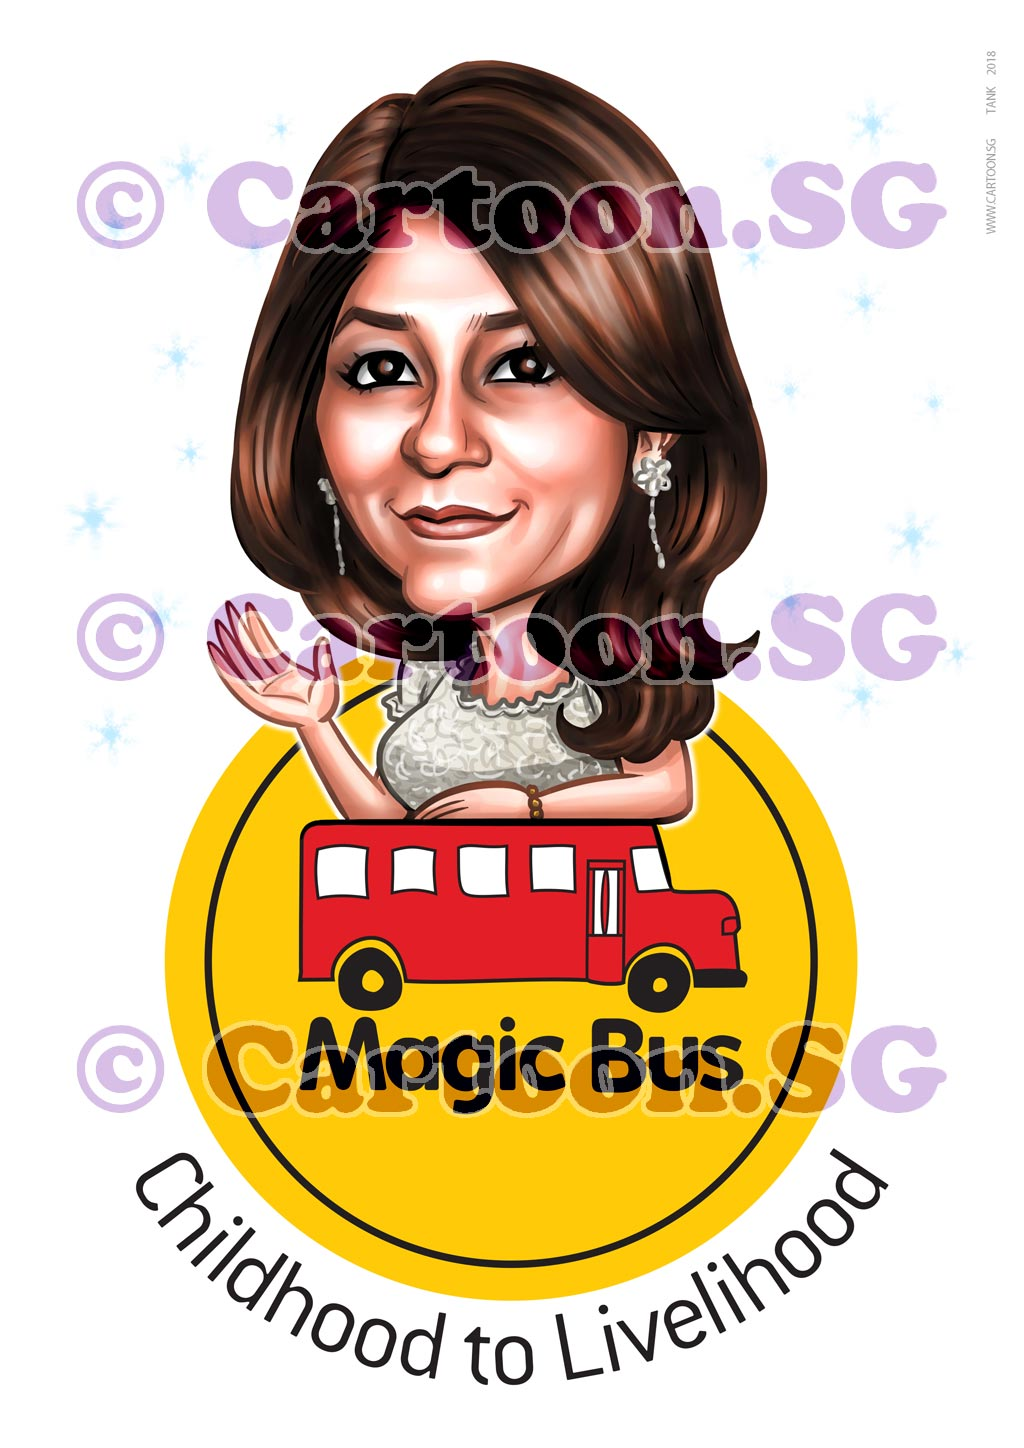 2018-02-21-Caricature-Singapore-digital-mugshot-magic-bus-logo-lady-pretty-gift.jpg